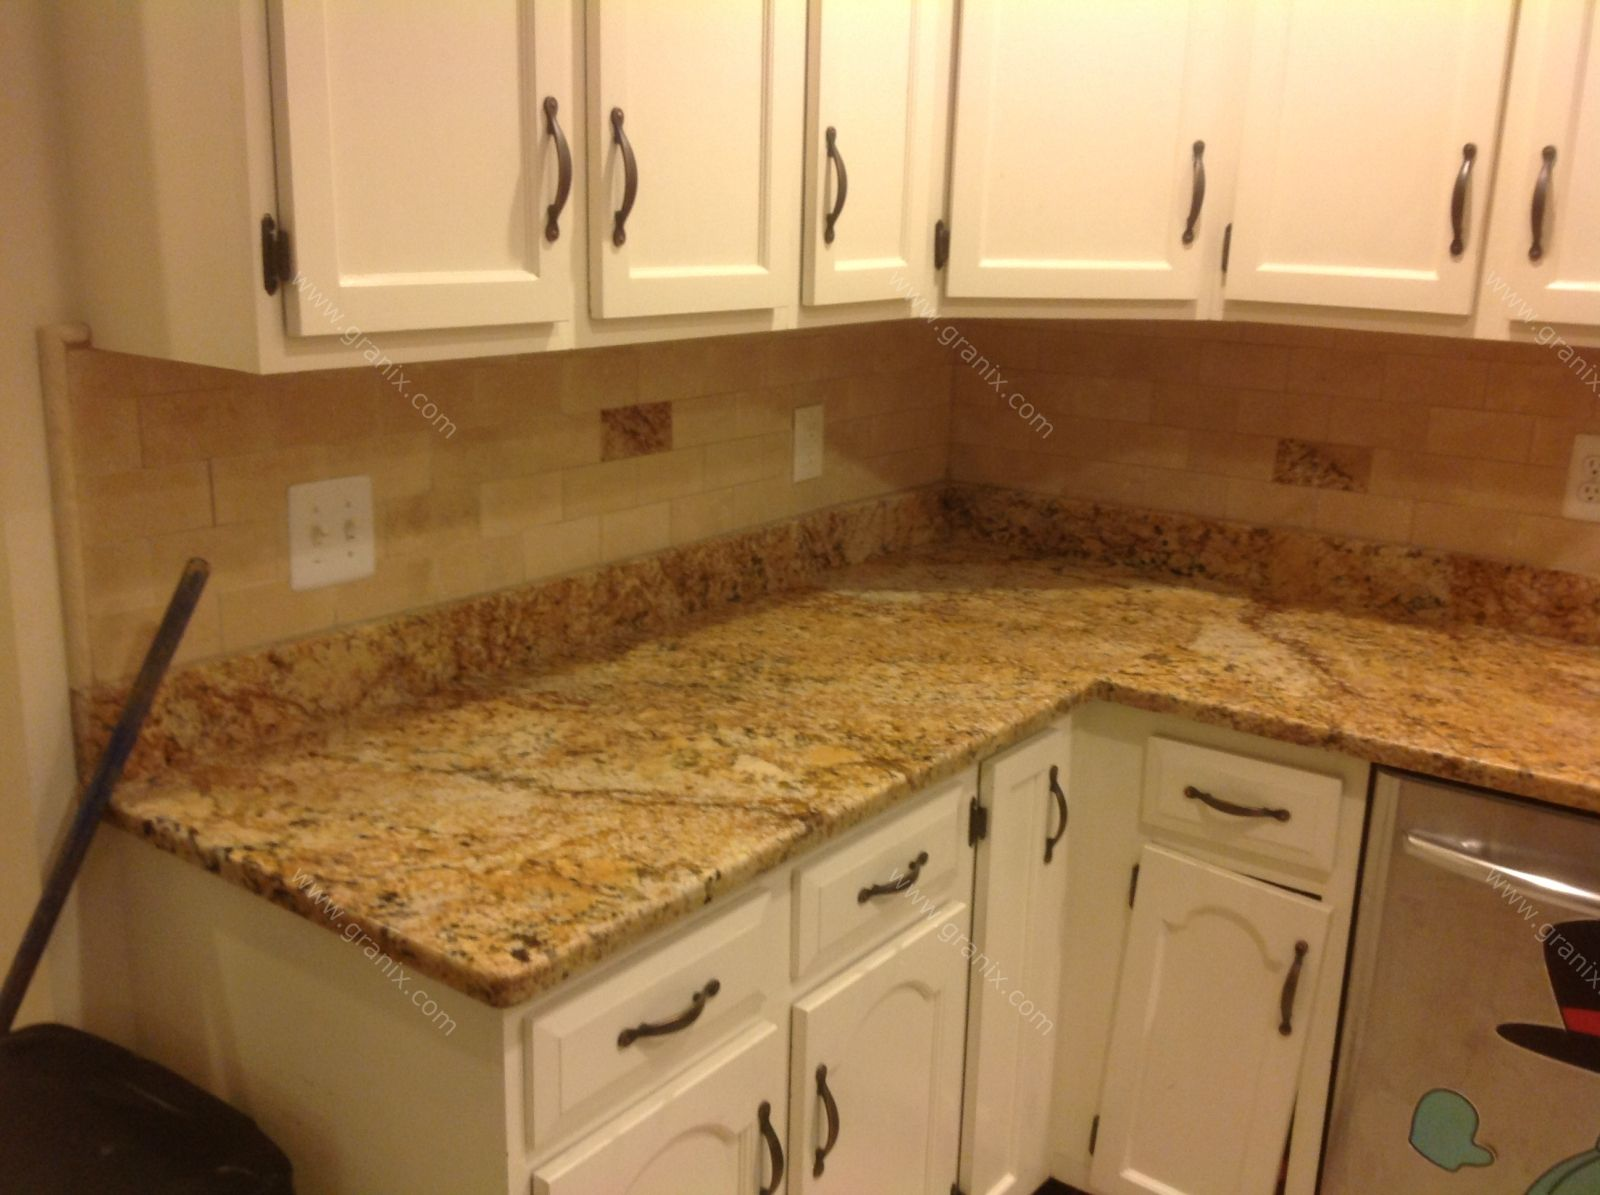 backsplash ideas for granite countertops leave a reply cancel reply - Granite Countertops With Backsplash